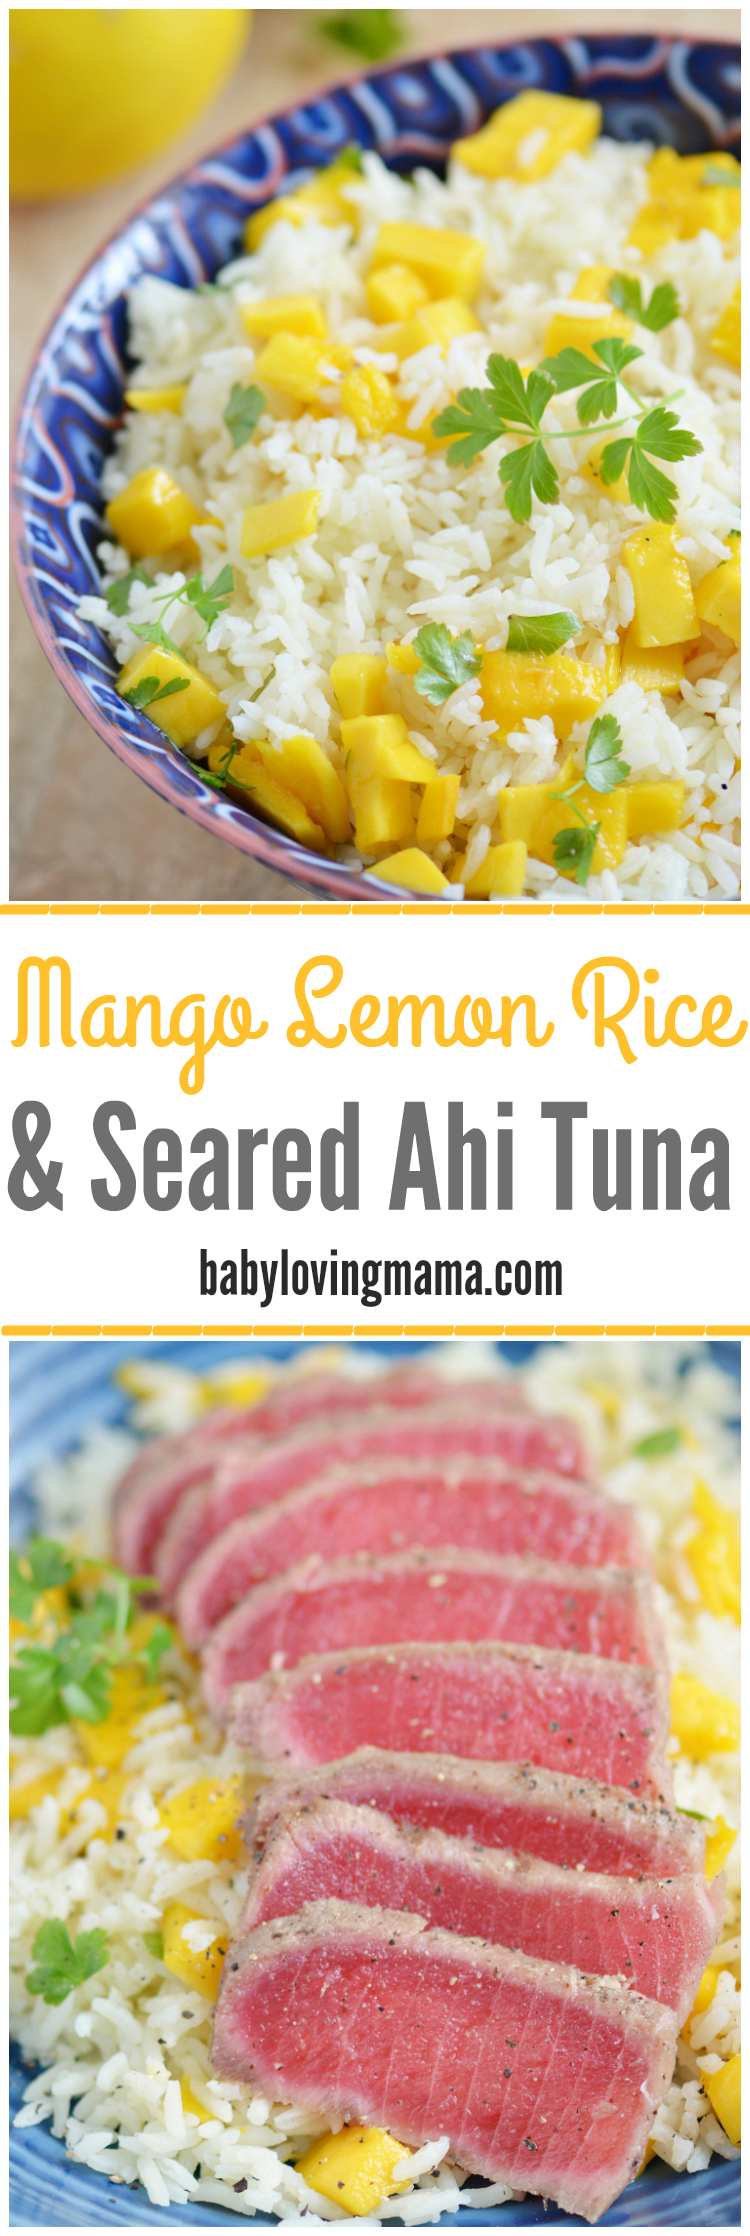 Mango Lemon Rice and Seared Ahi Tuna